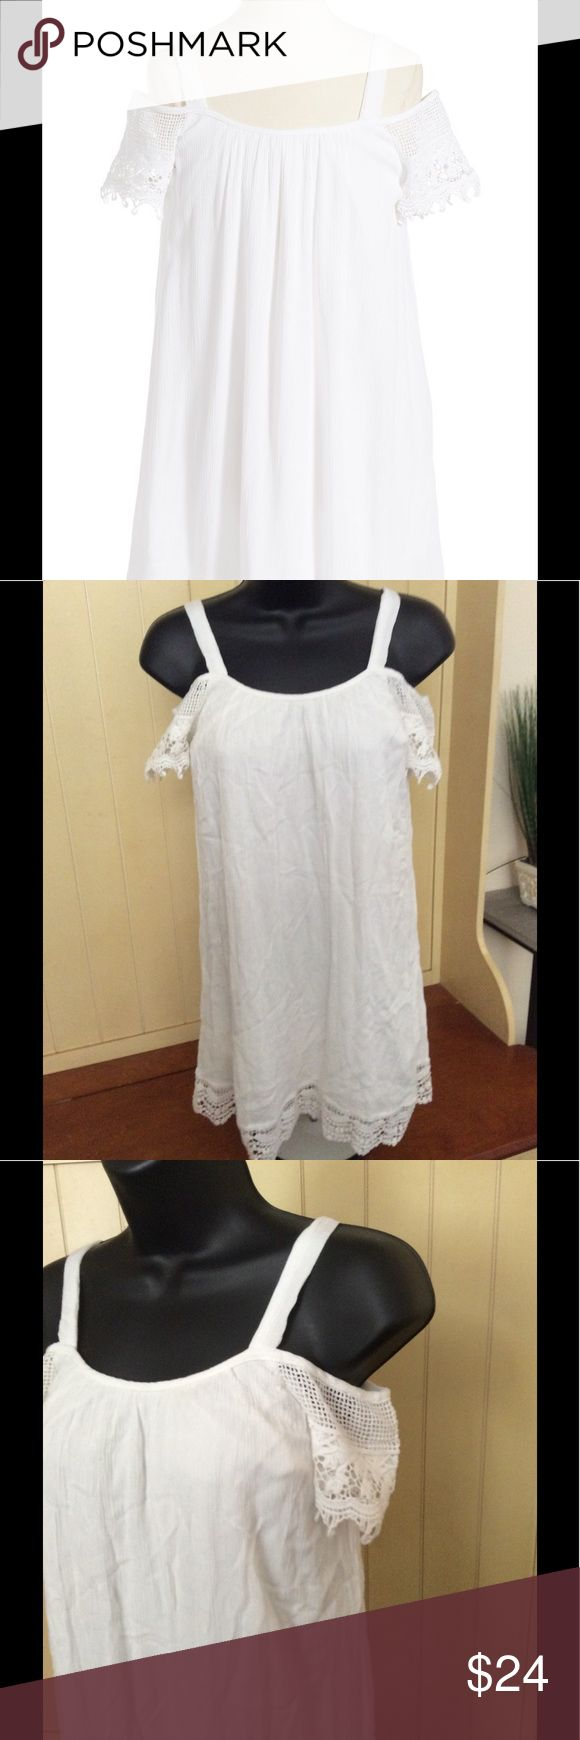 """🆕 White Cold Shoulder Top Gorgeous lined cold shoulder dress. NWT and in excellent condition. Straps have two buttons to make tighter or looser. Can be worn as girls dress or as a woman's size small Top. 17"""" from armpit to armpit and 28"""" long. Band of Gypsies Dresses"""